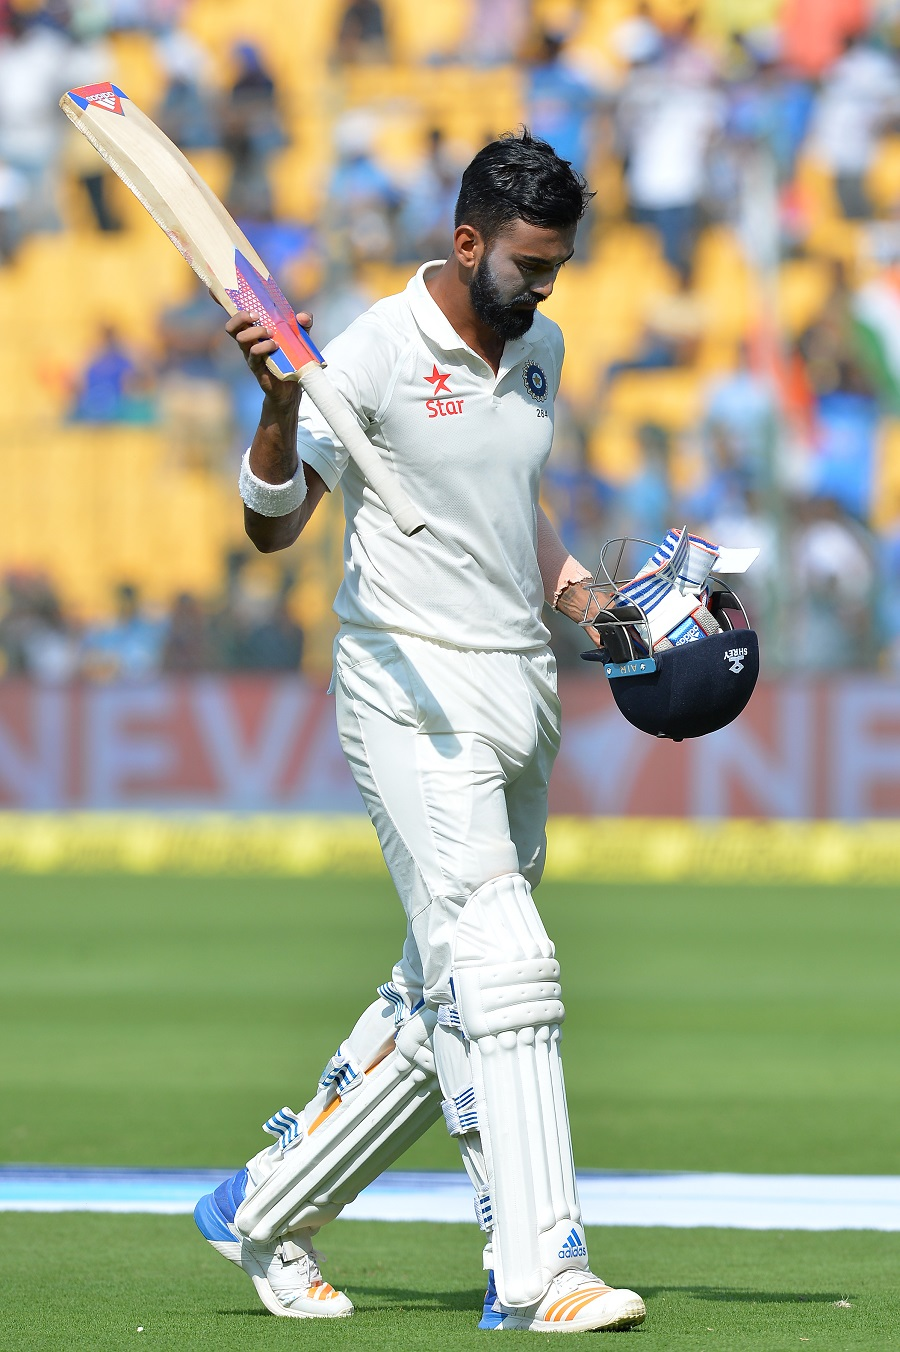 injured india opener rahul to miss icc champions trophy